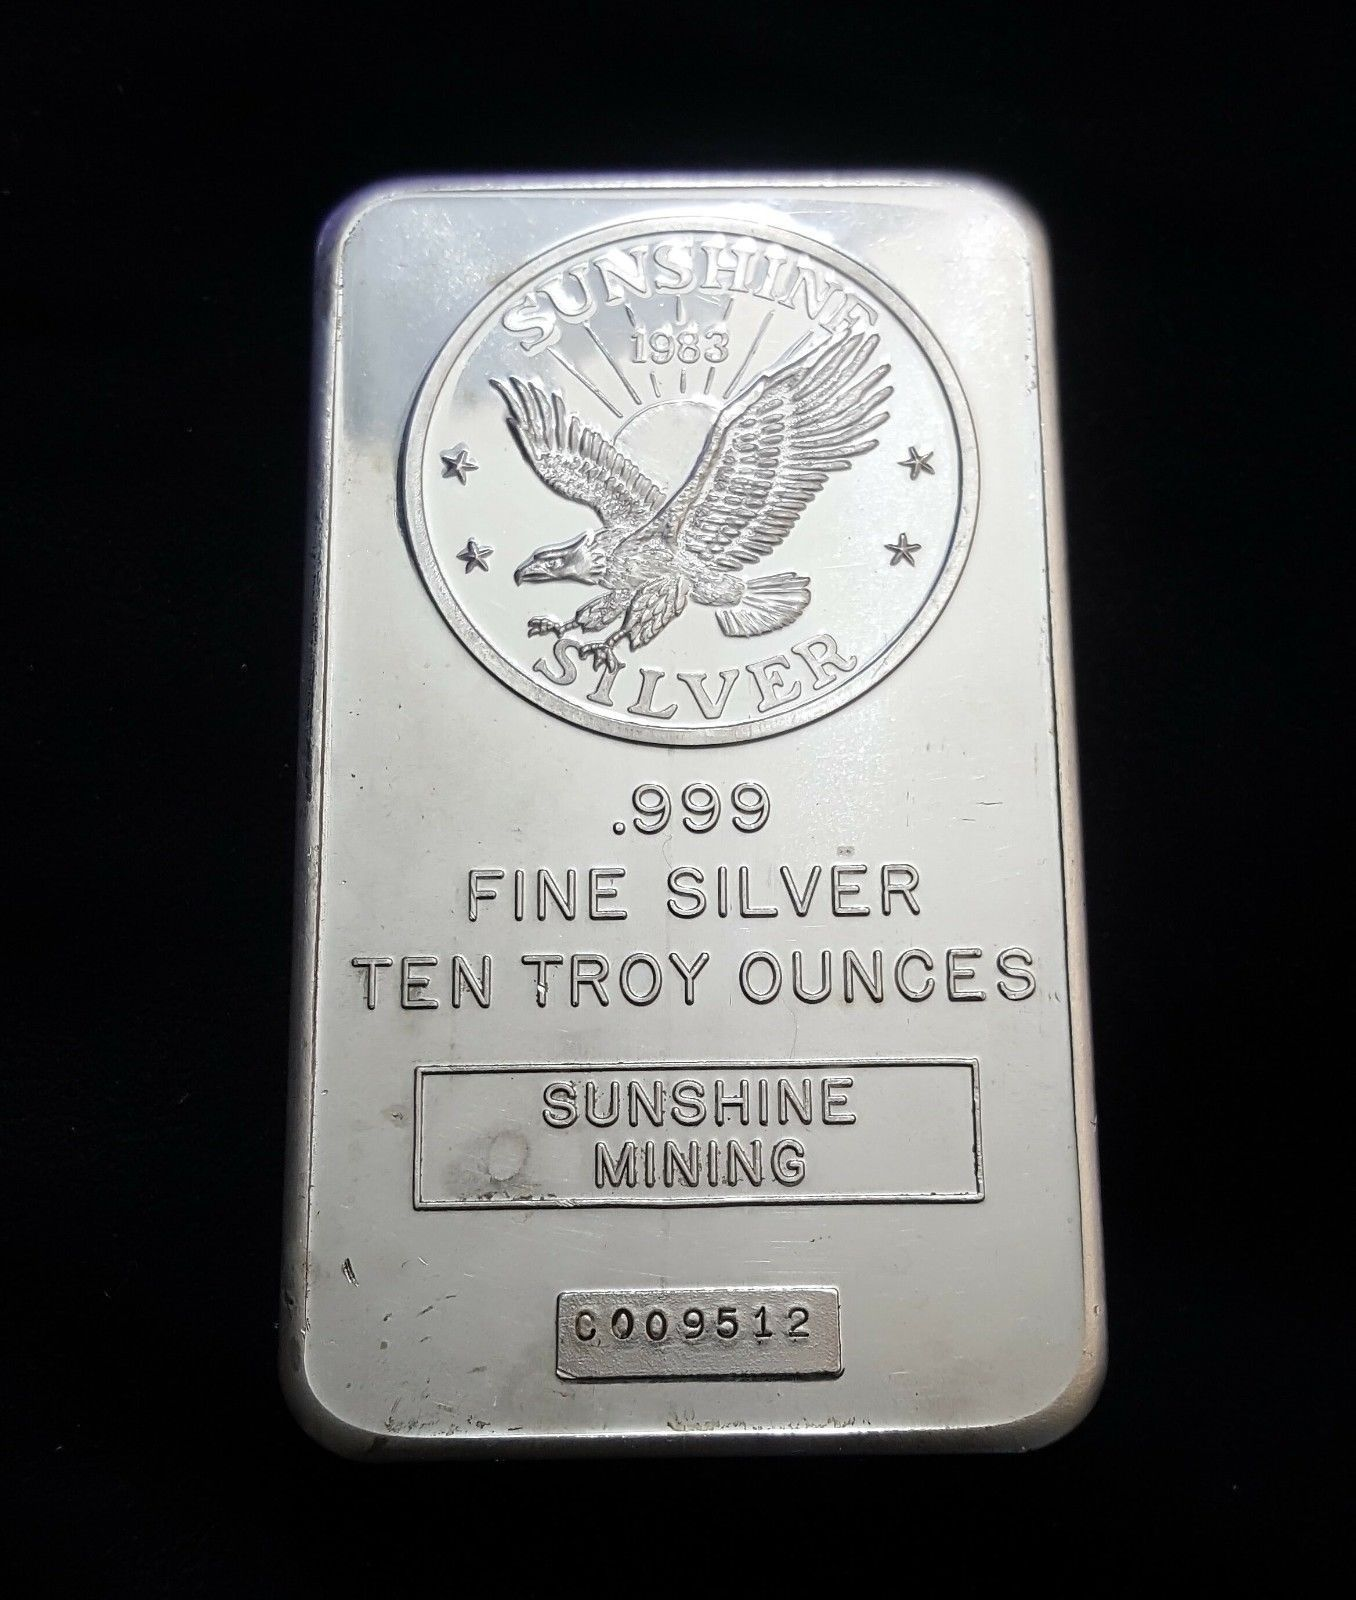 10 Troy Oz 999 Fine Silver Bullion Bar Sunshine Mining Flying Eagle 1983 Nice Goldbullion Gold Bullion Bars Gold Investments Silver Investing